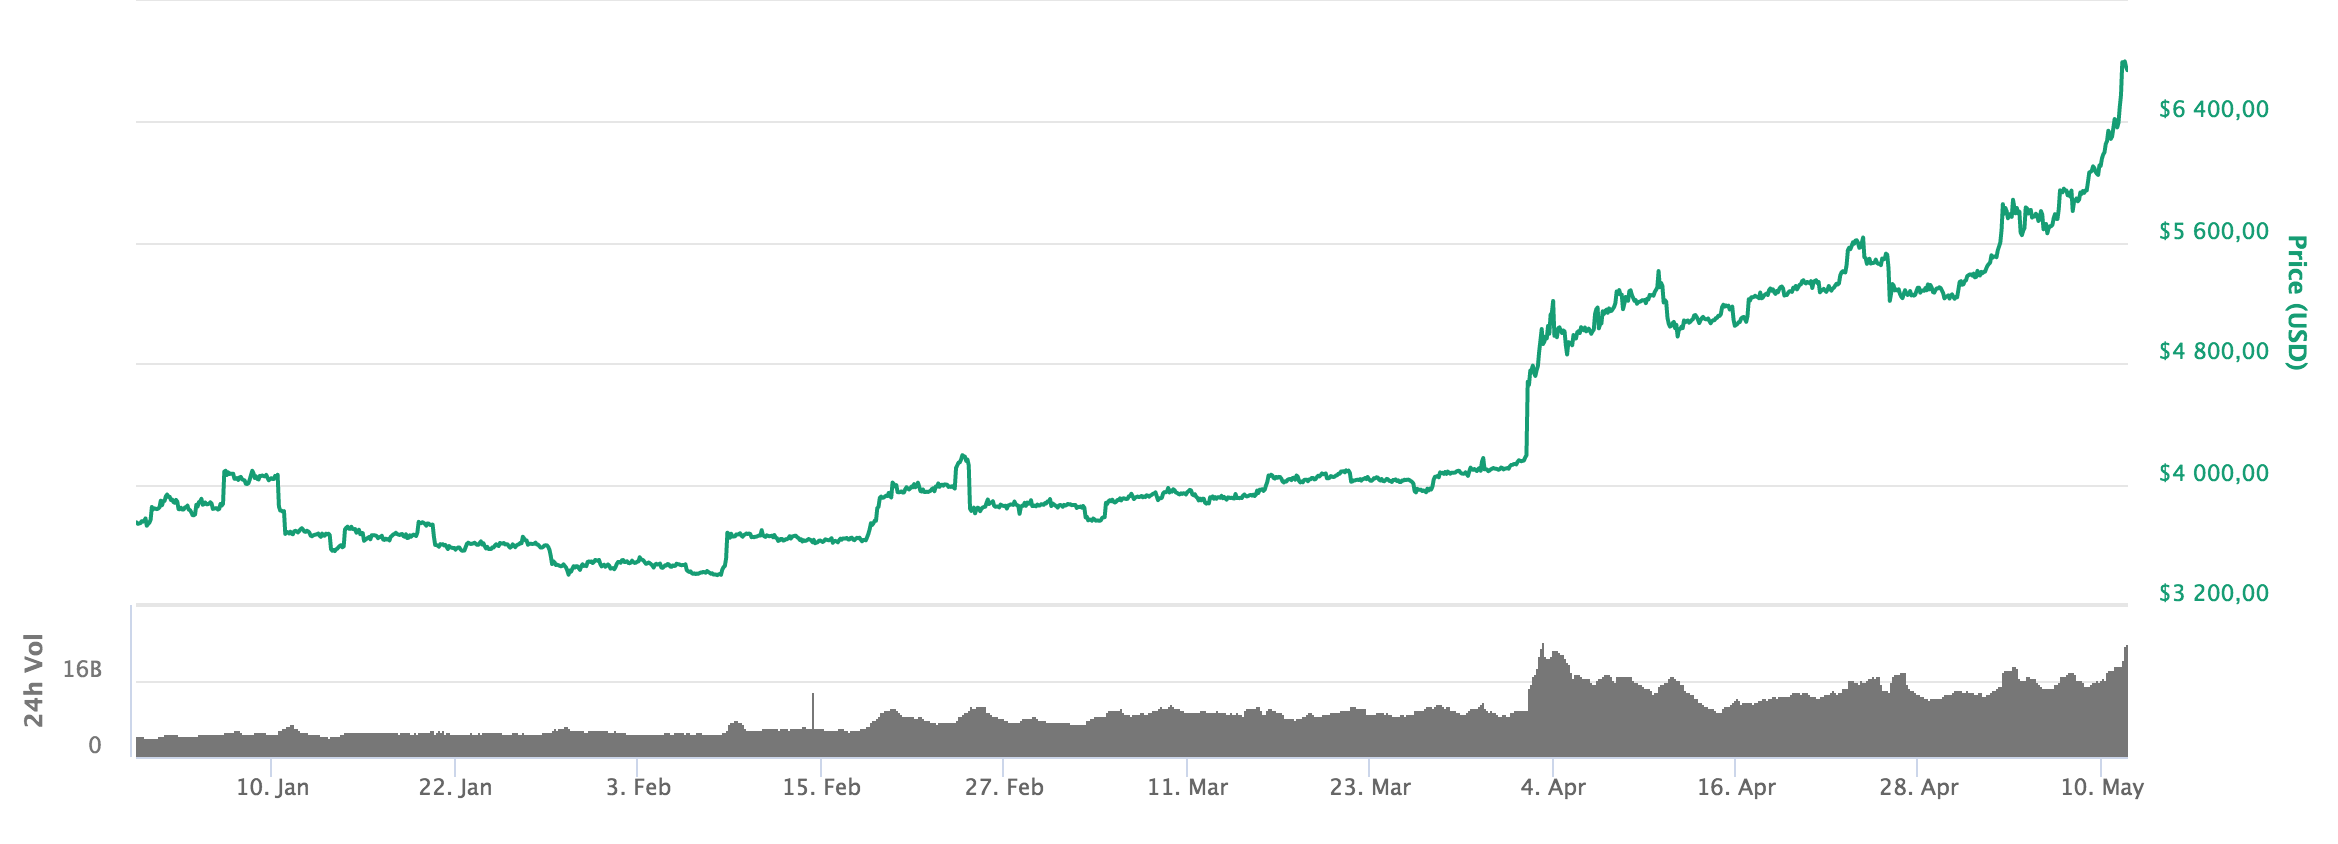 The development of the bitcoin price from year-end until today.